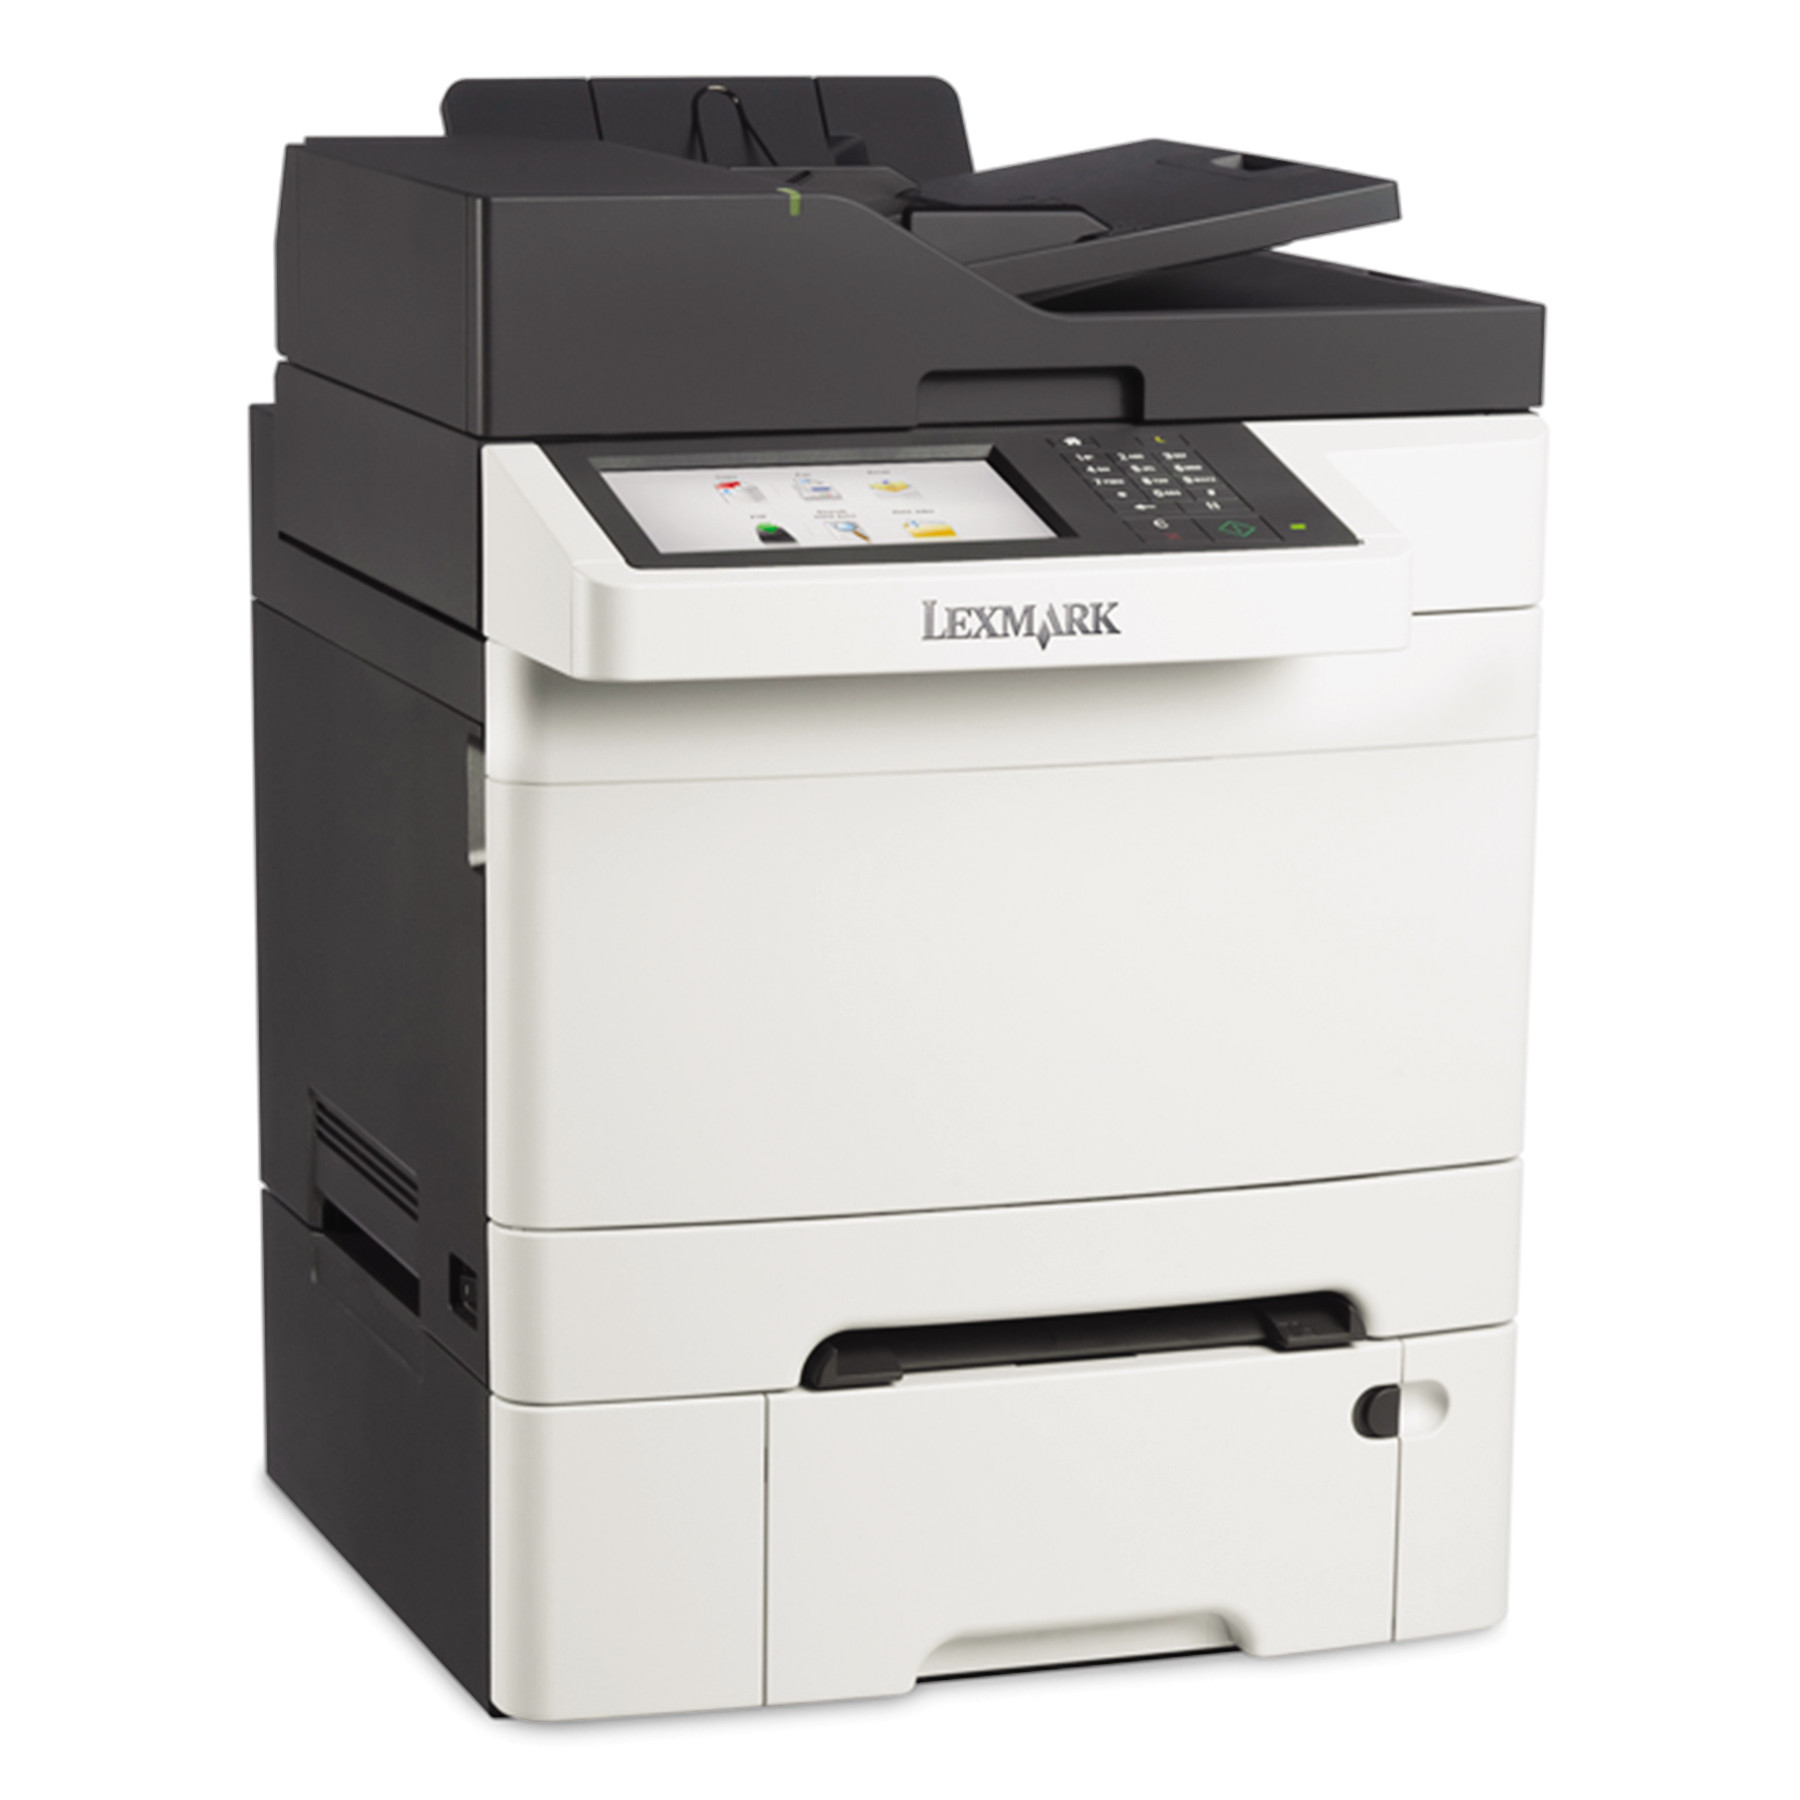 Lexmark CX510dthe Multifunction Color Laser Printer, Copy/Fax/Print/Scan